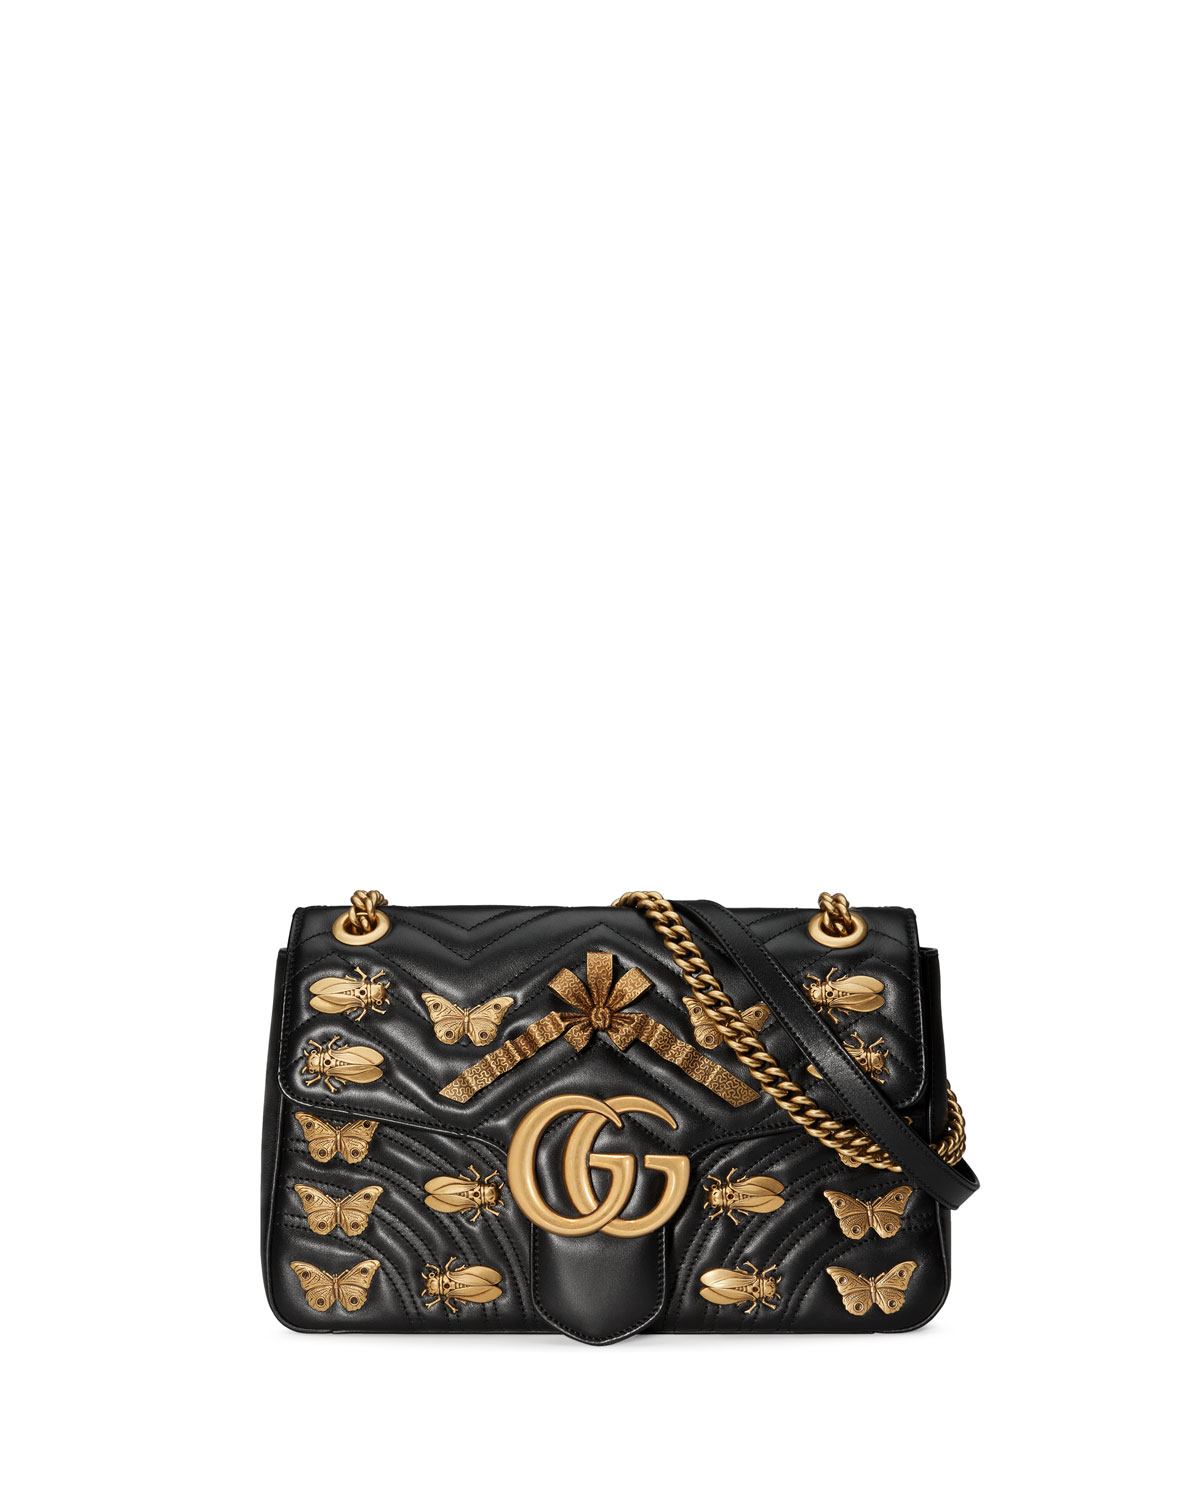 6346ffbaa16 Gucci GG Marmont Medium Insect Shoulder Bag